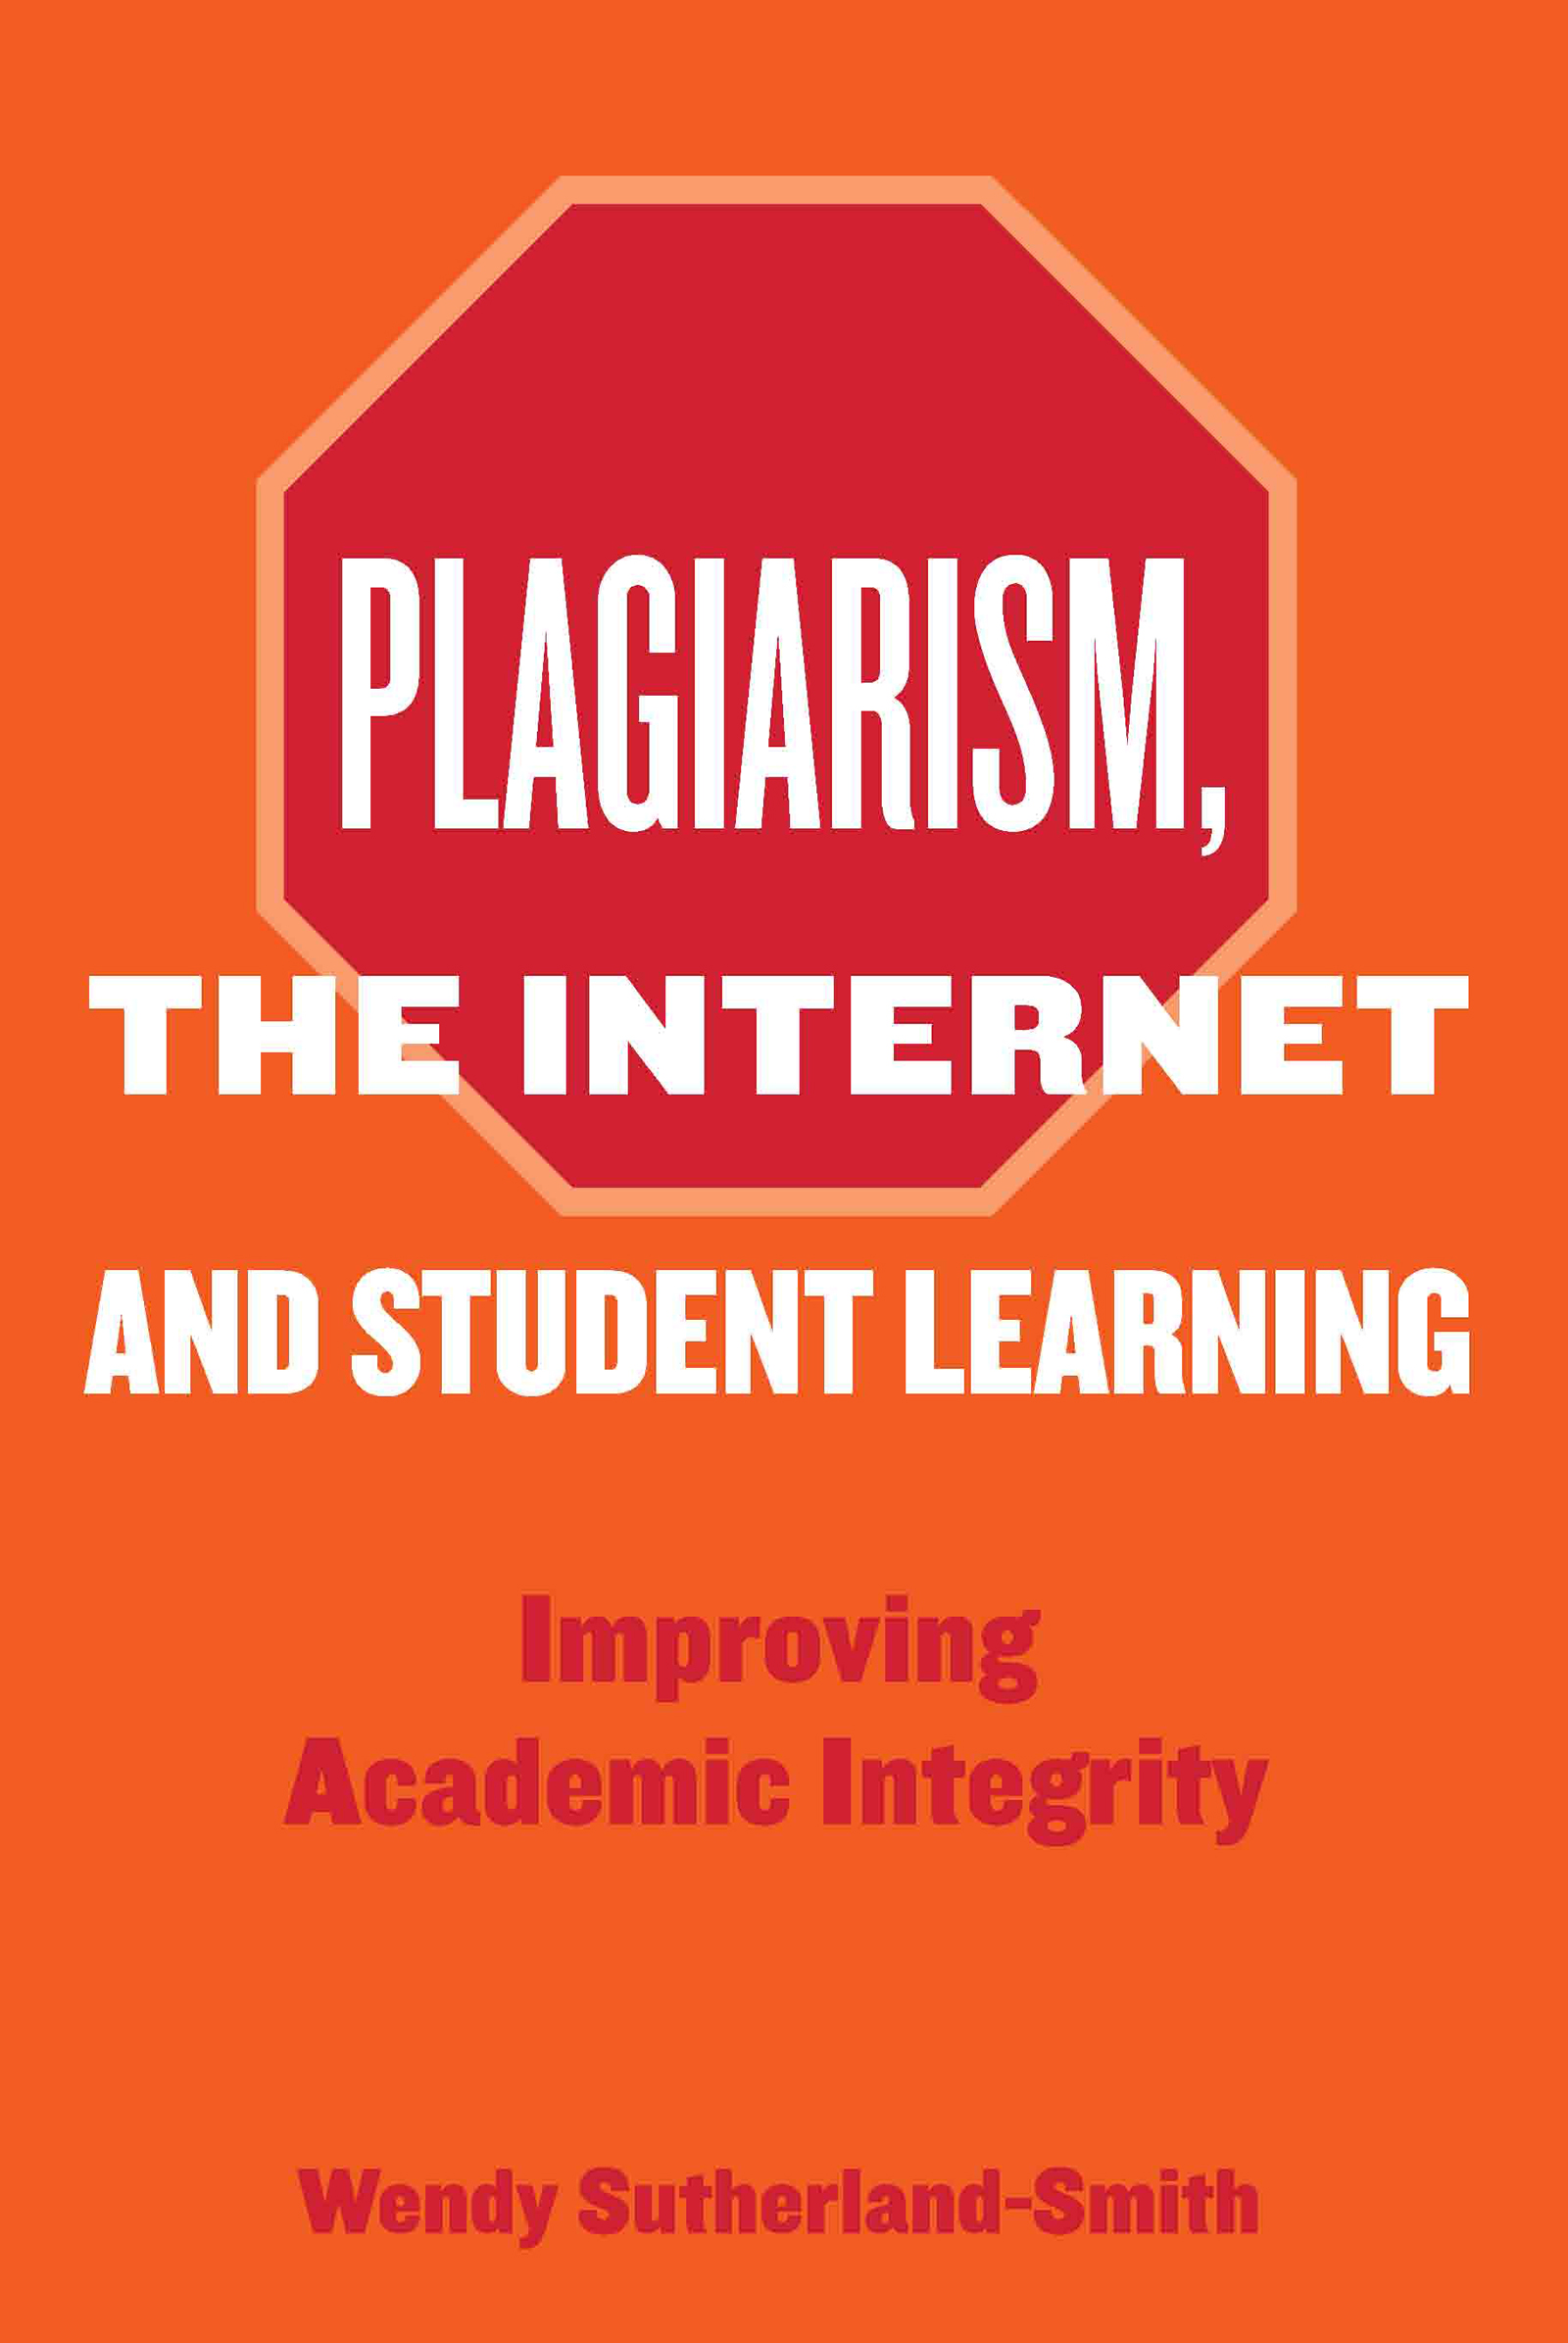 Plagiarism, the Internet, and Student Learning: Improving Academic Integrity (Paperback) book cover